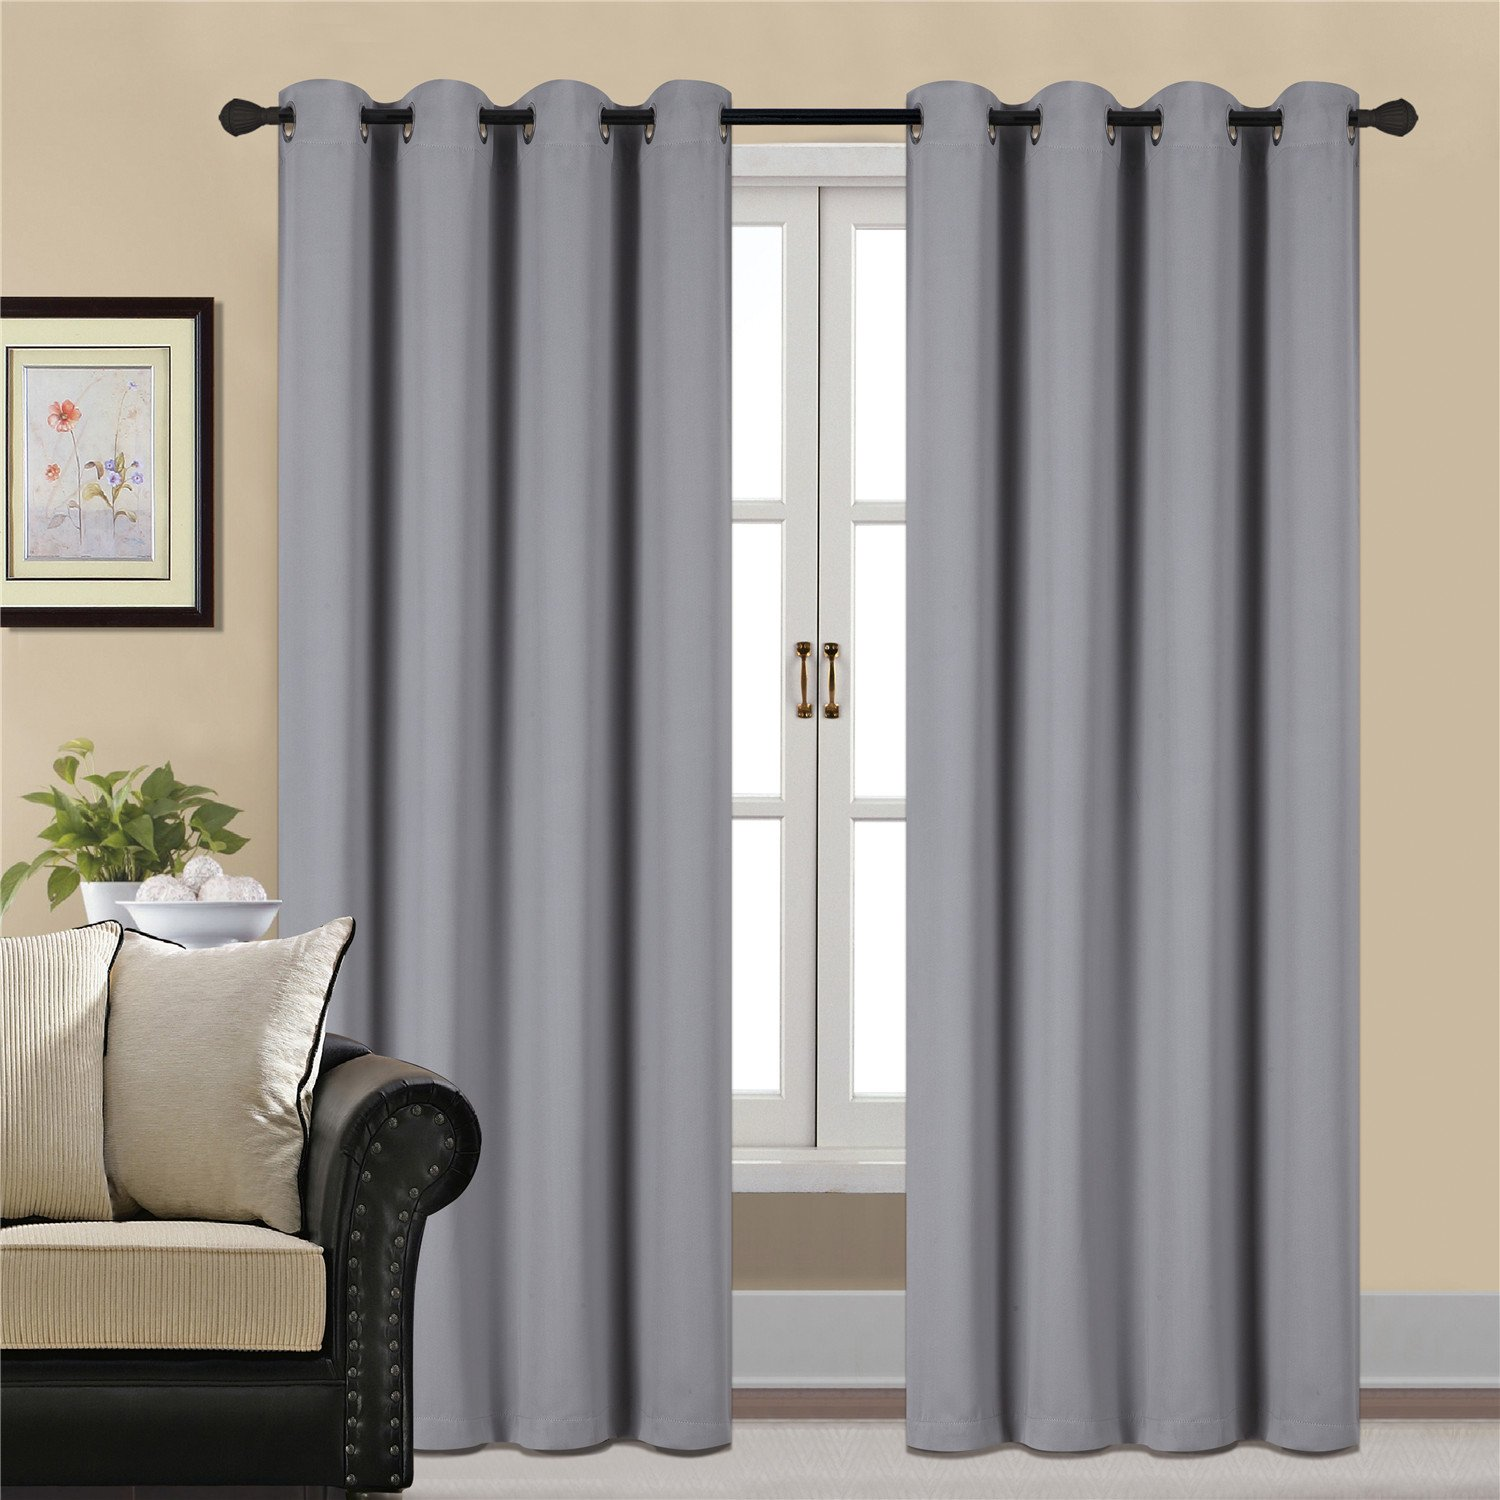 Blackout Curtains Thermal Insulated Grey Curtains For Bedroom Grey